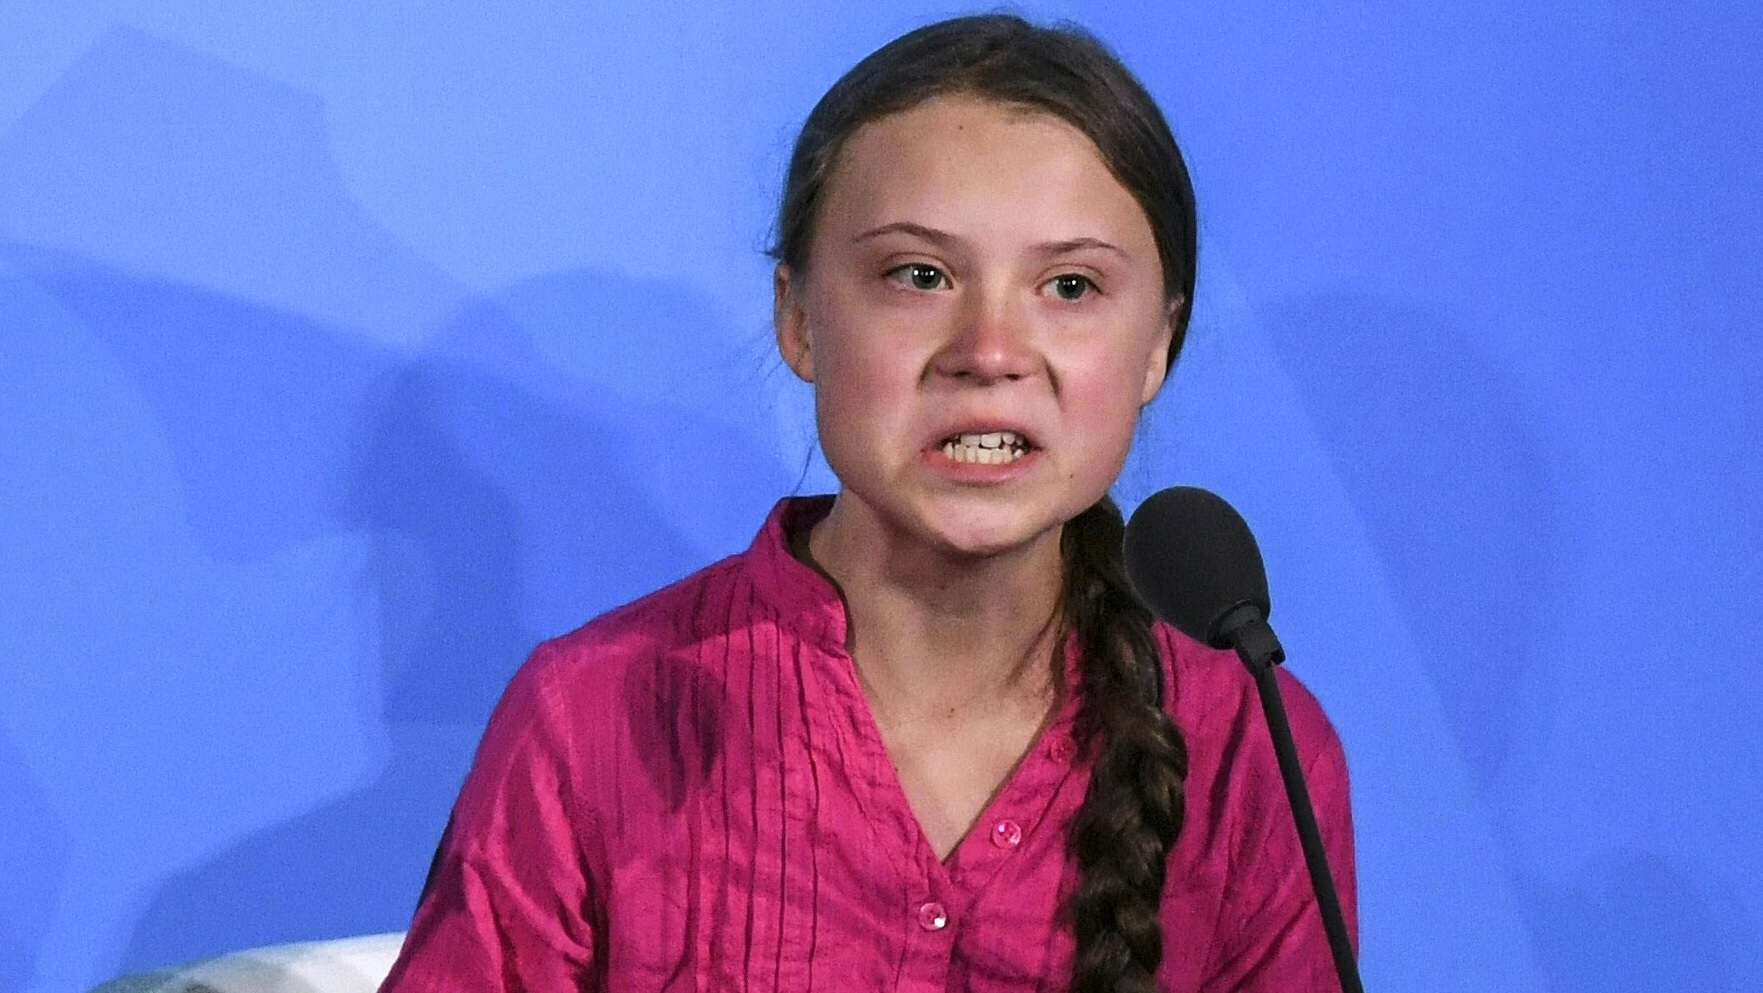 Image: Train company to get dressing down from German authorities after embarrassing Greta Thunberg